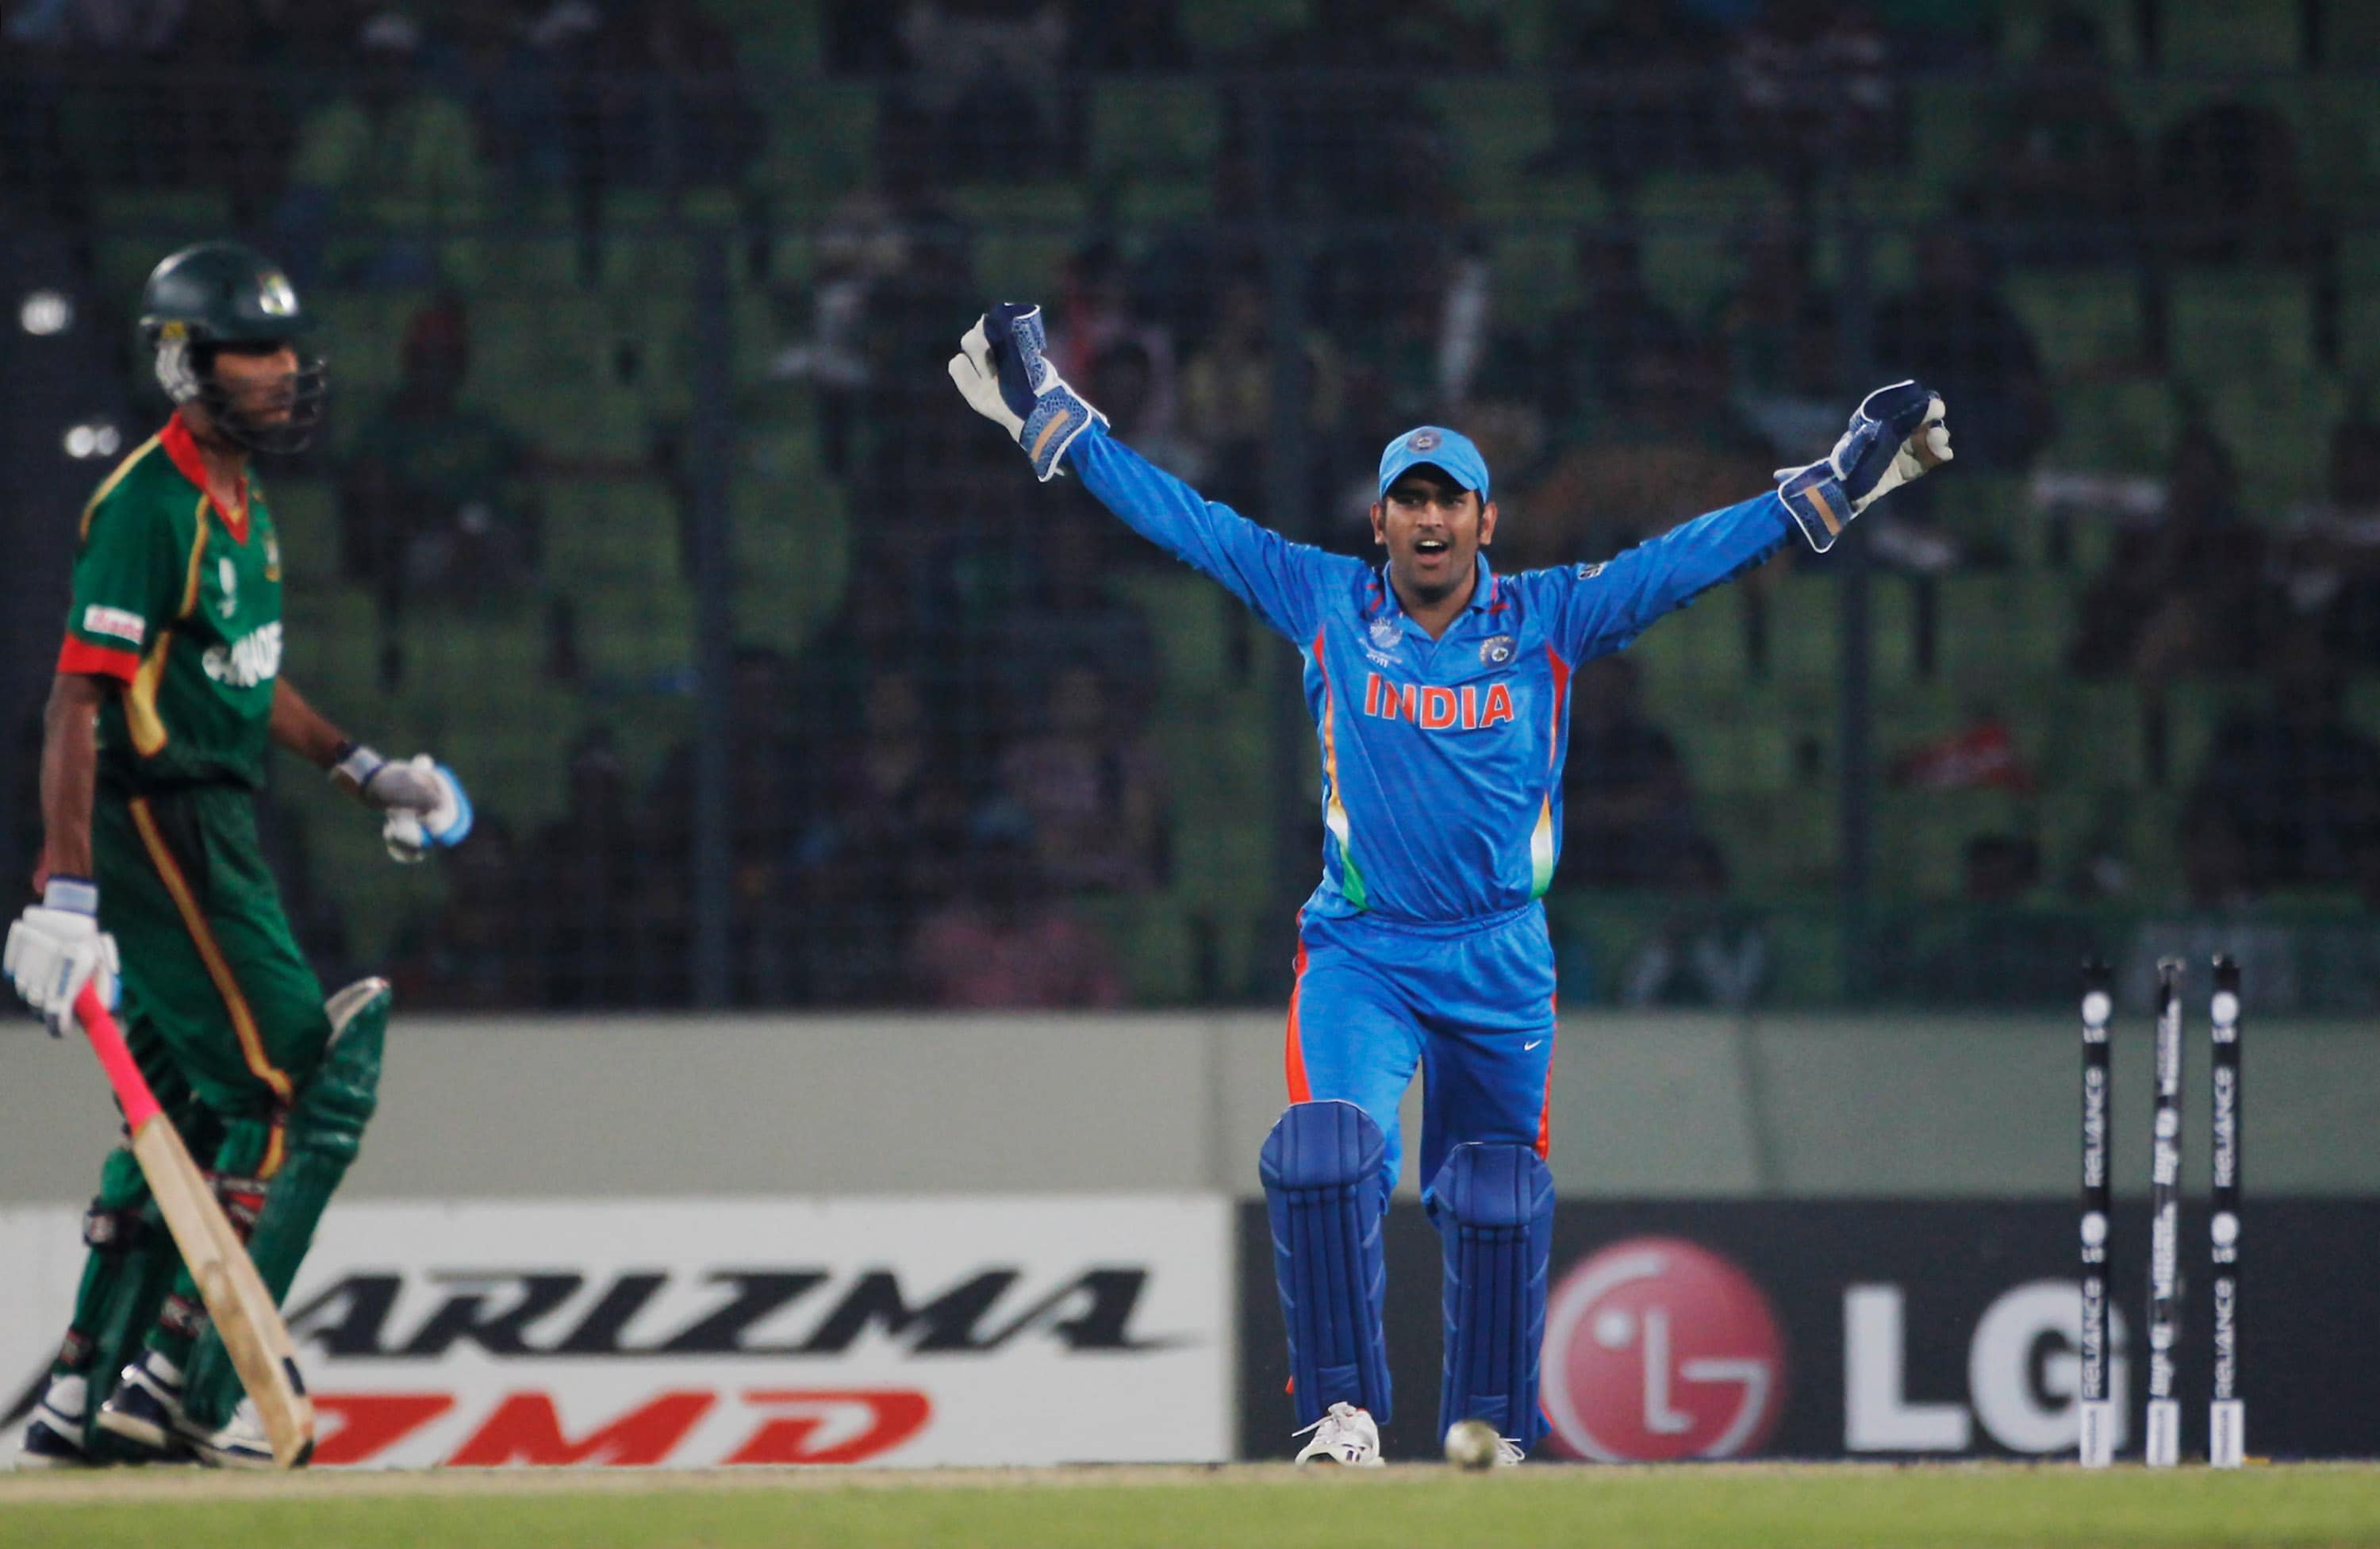 MS Dhoni celebrates the run out of Shafiul Islam of Bangladesh during the opening game of the ICC World Cup between Bangladesh and India at the Sher-e-Bangla National Stadium in Dhaka. (Getty Images)